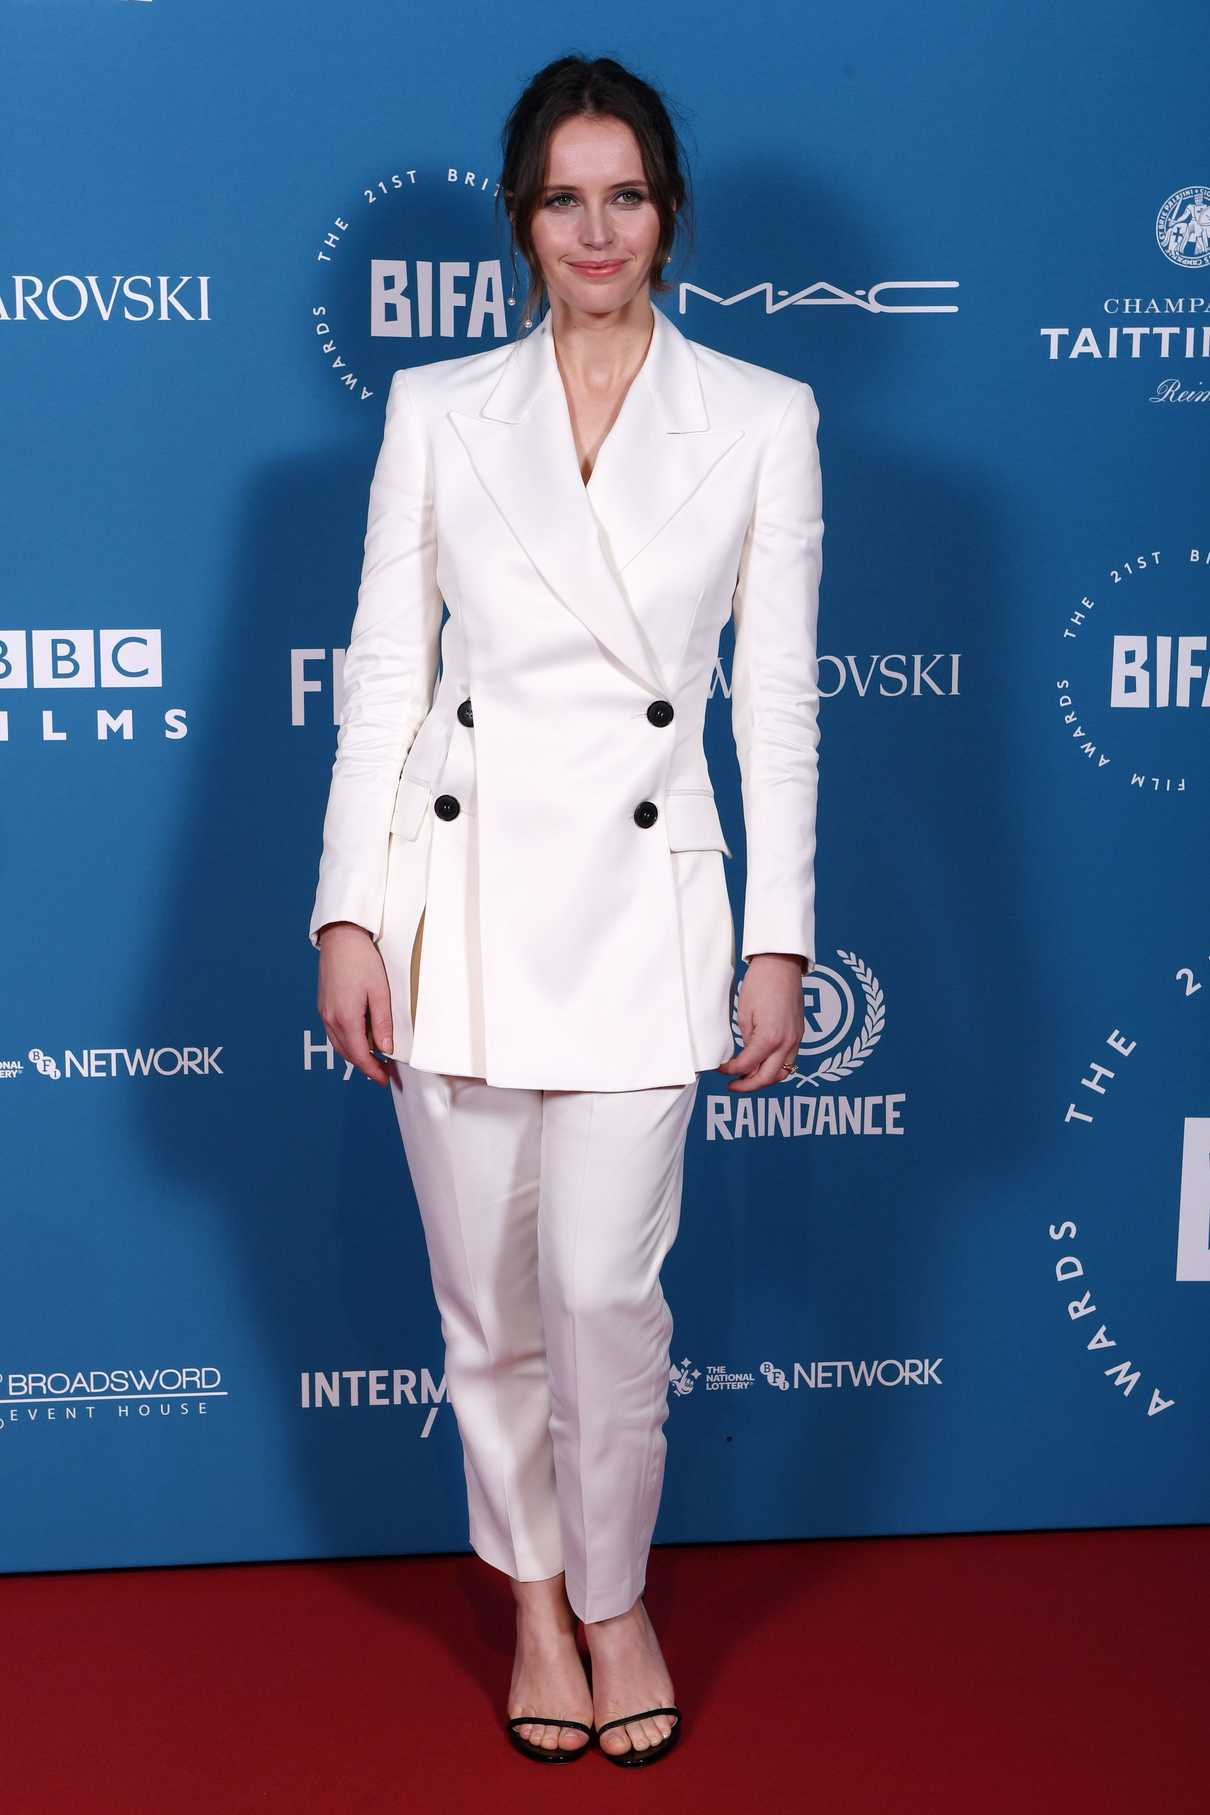 Felicity Jones Attends the 21st British Independent Film Awards in London 12/02/2018